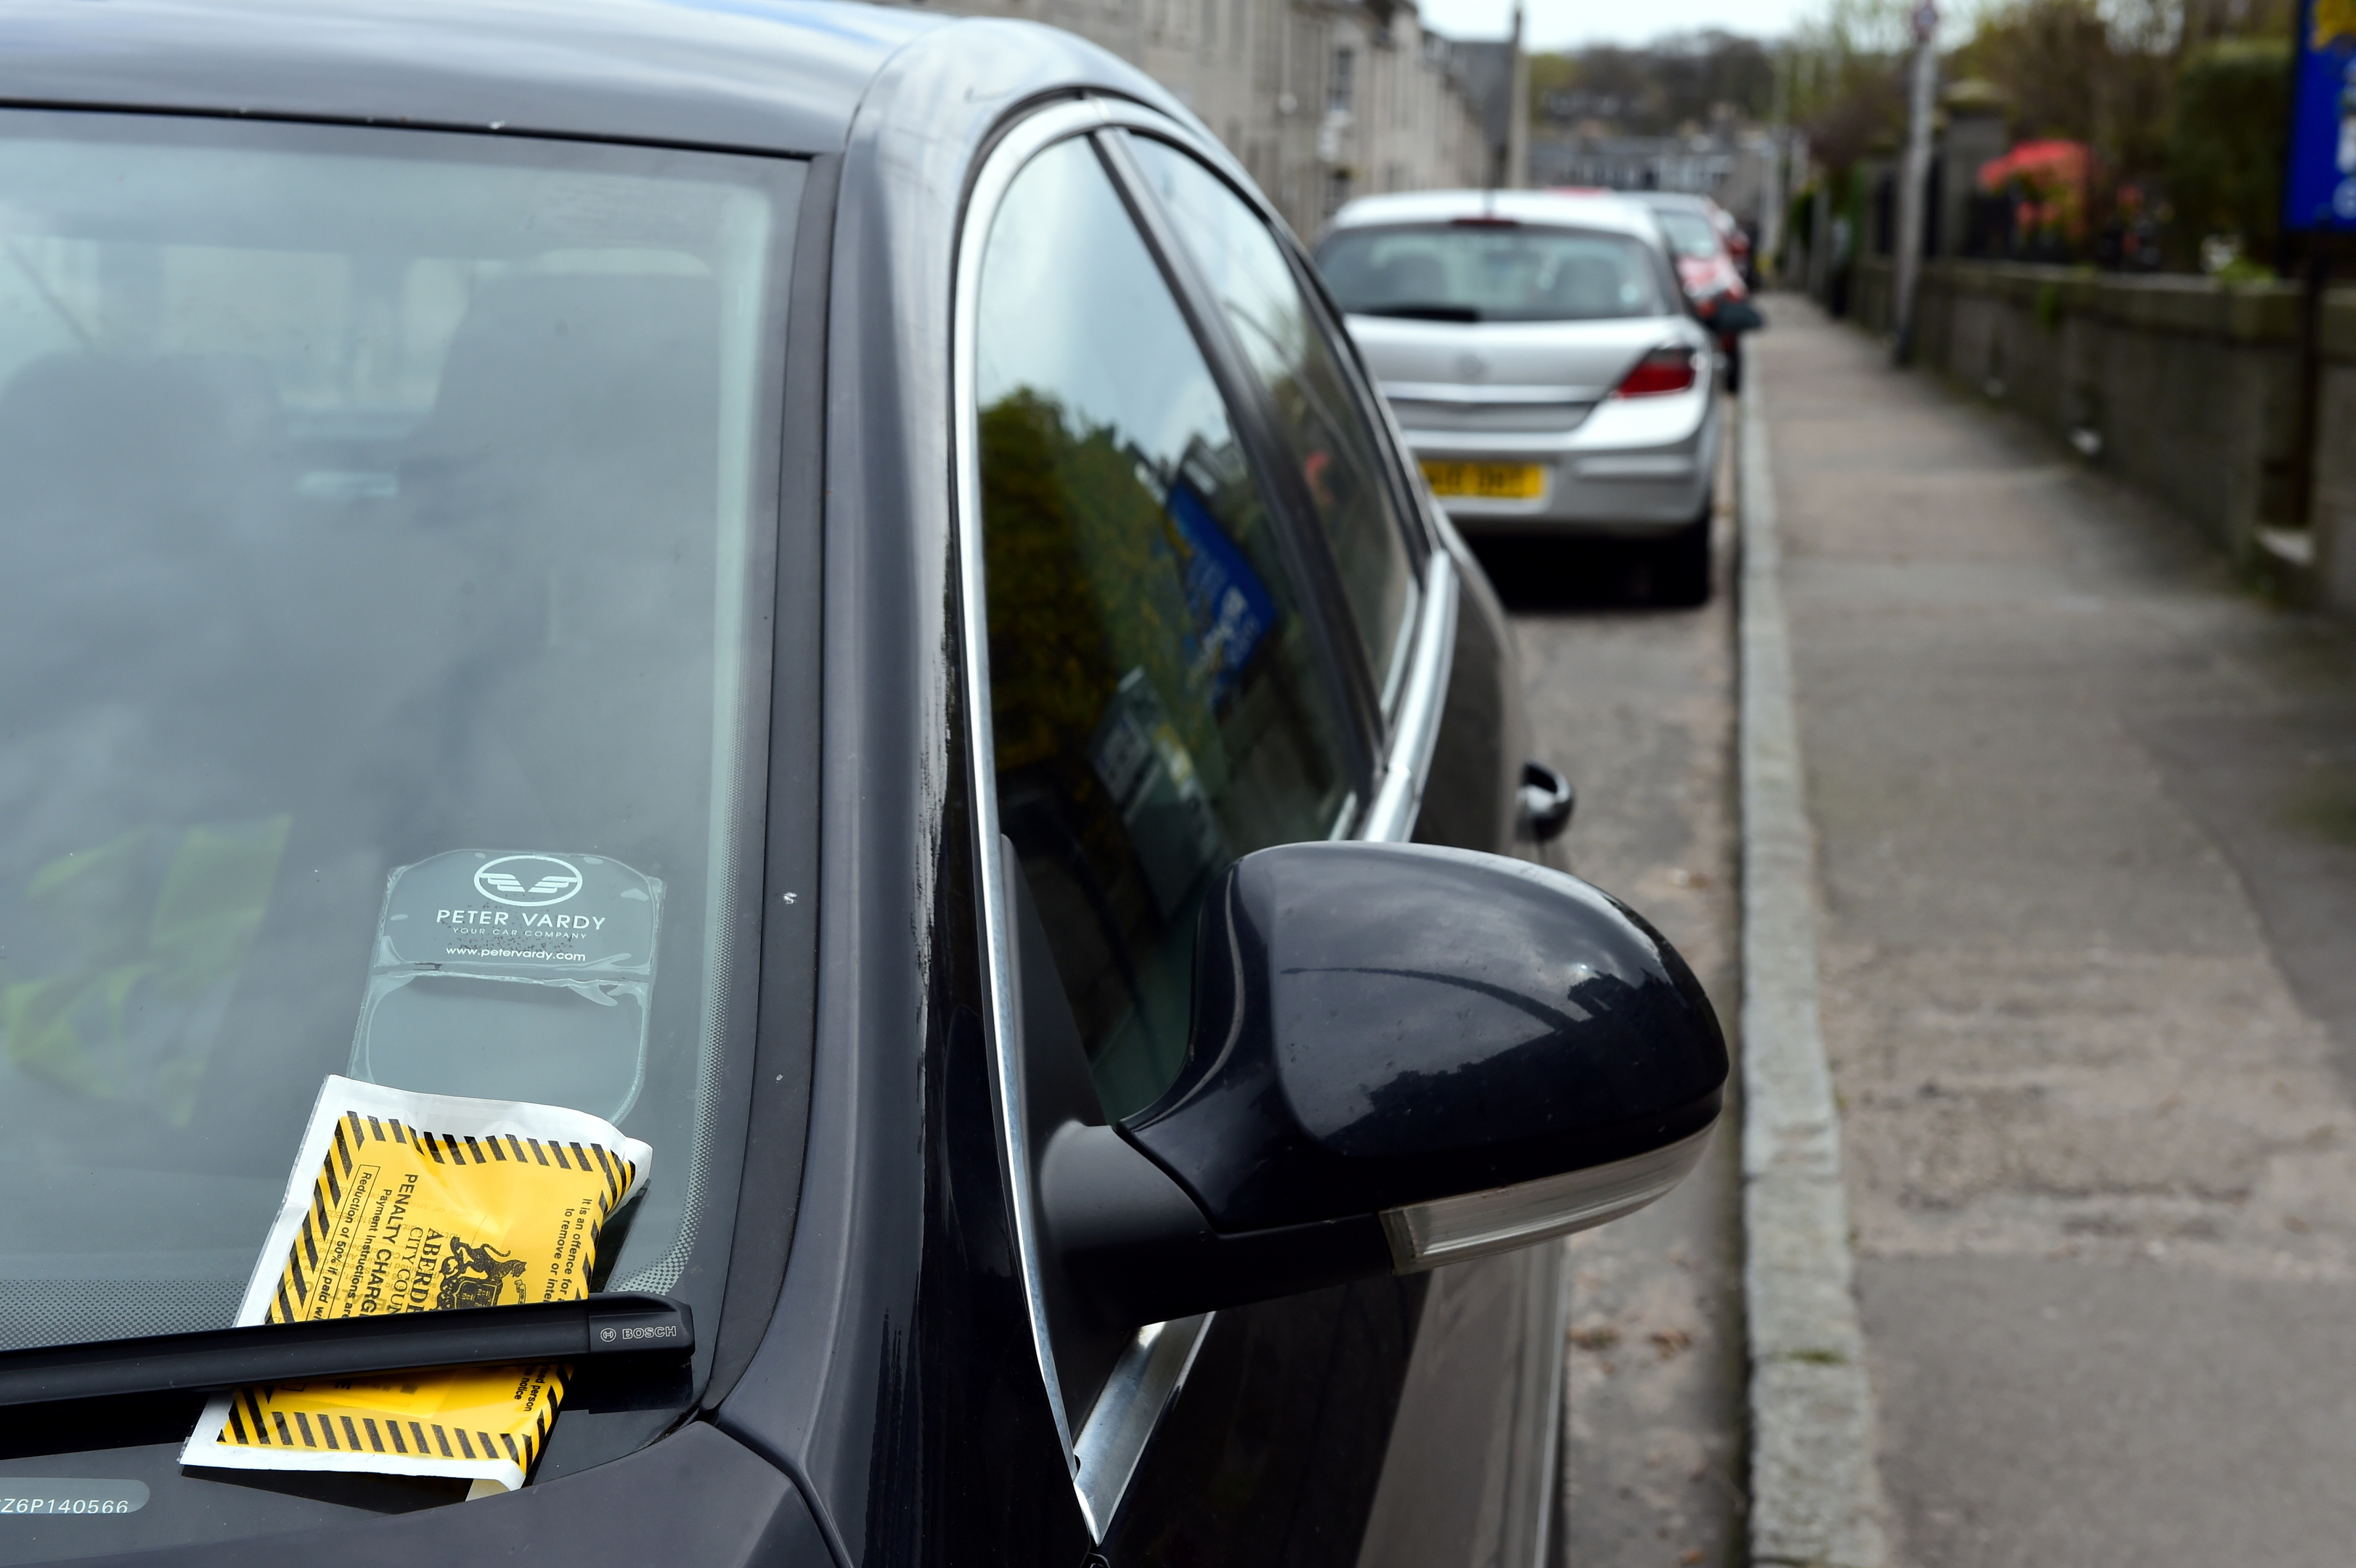 More than £8.3m was estimated to be brought in through parking charges and bus lane fines for Aberdeen City Council